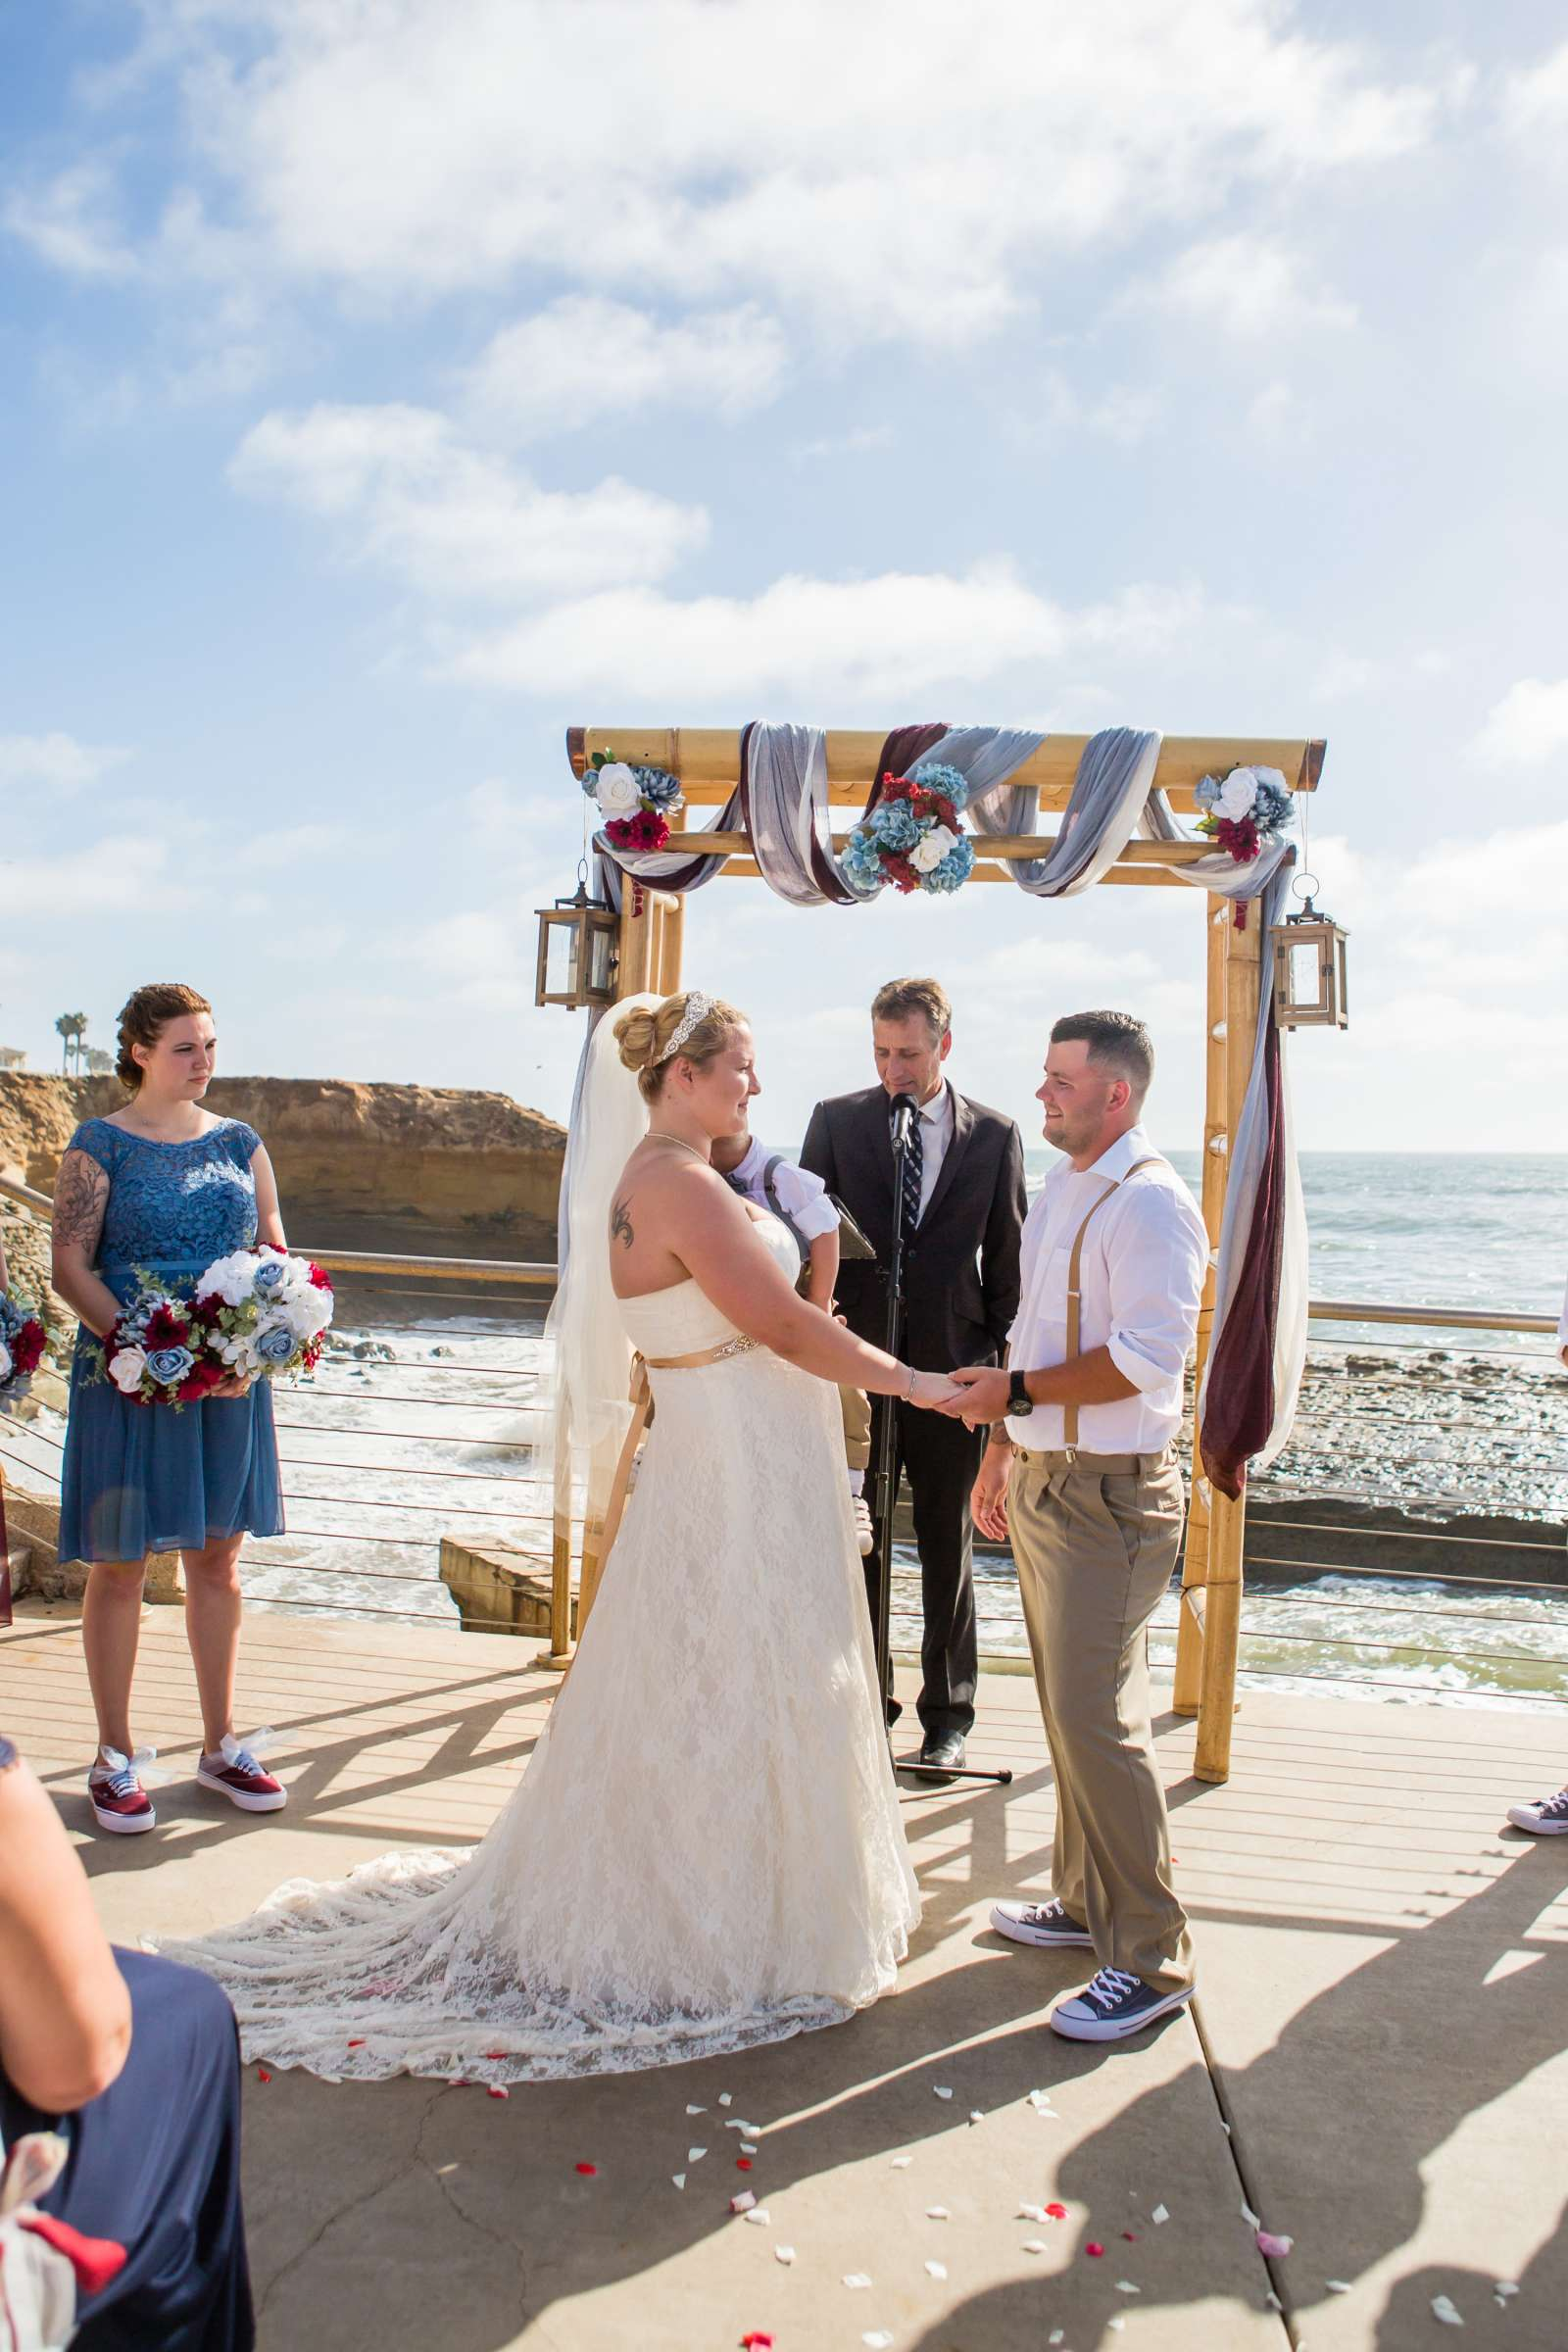 The Inn at Sunset Cliffs Wedding, Melinda and Benjamin Wedding Photo #60 by True Photography